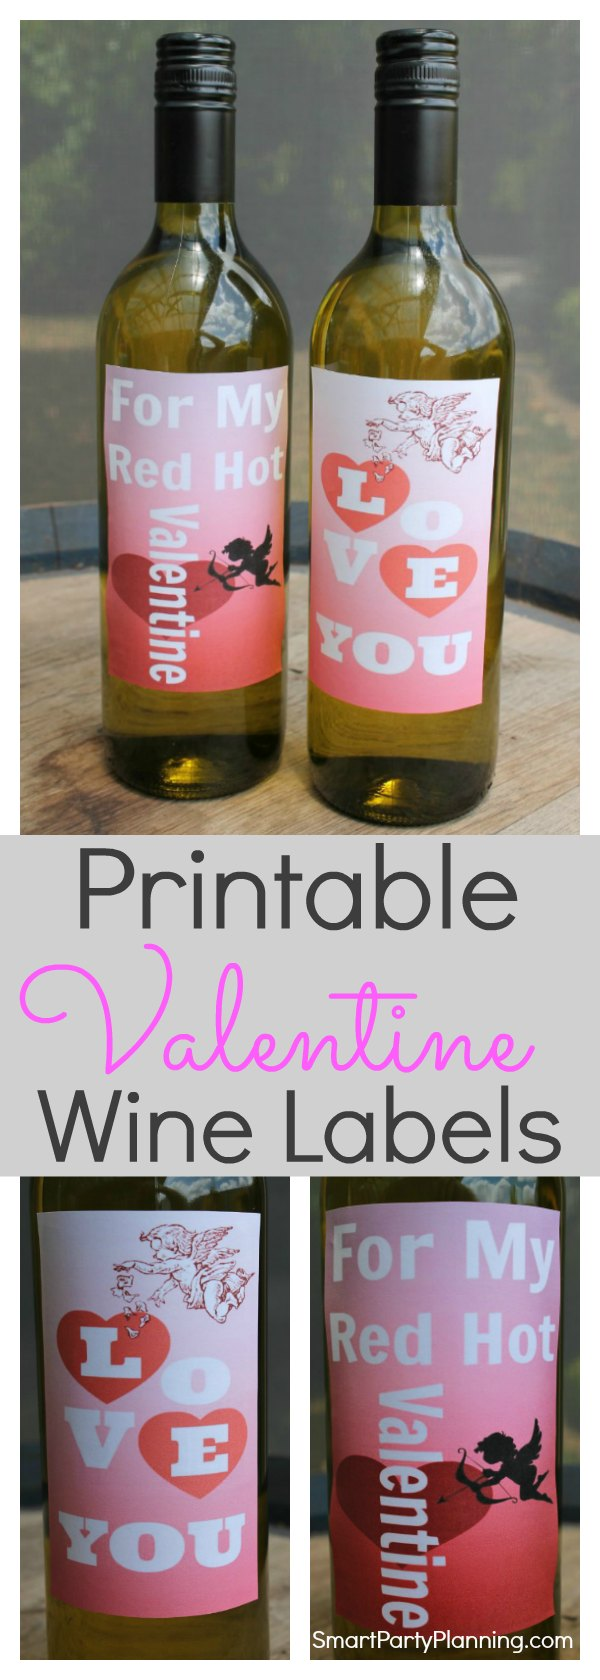 These Printable Valentine wine labels are the perfect way to share the love this Valentine's day. Use as a Valentine's gift, take to a picnic, or bring the bottle out at a romantic dinner for two.  Either way, the extra special touch will be sure to highlight the love this Valentine's.